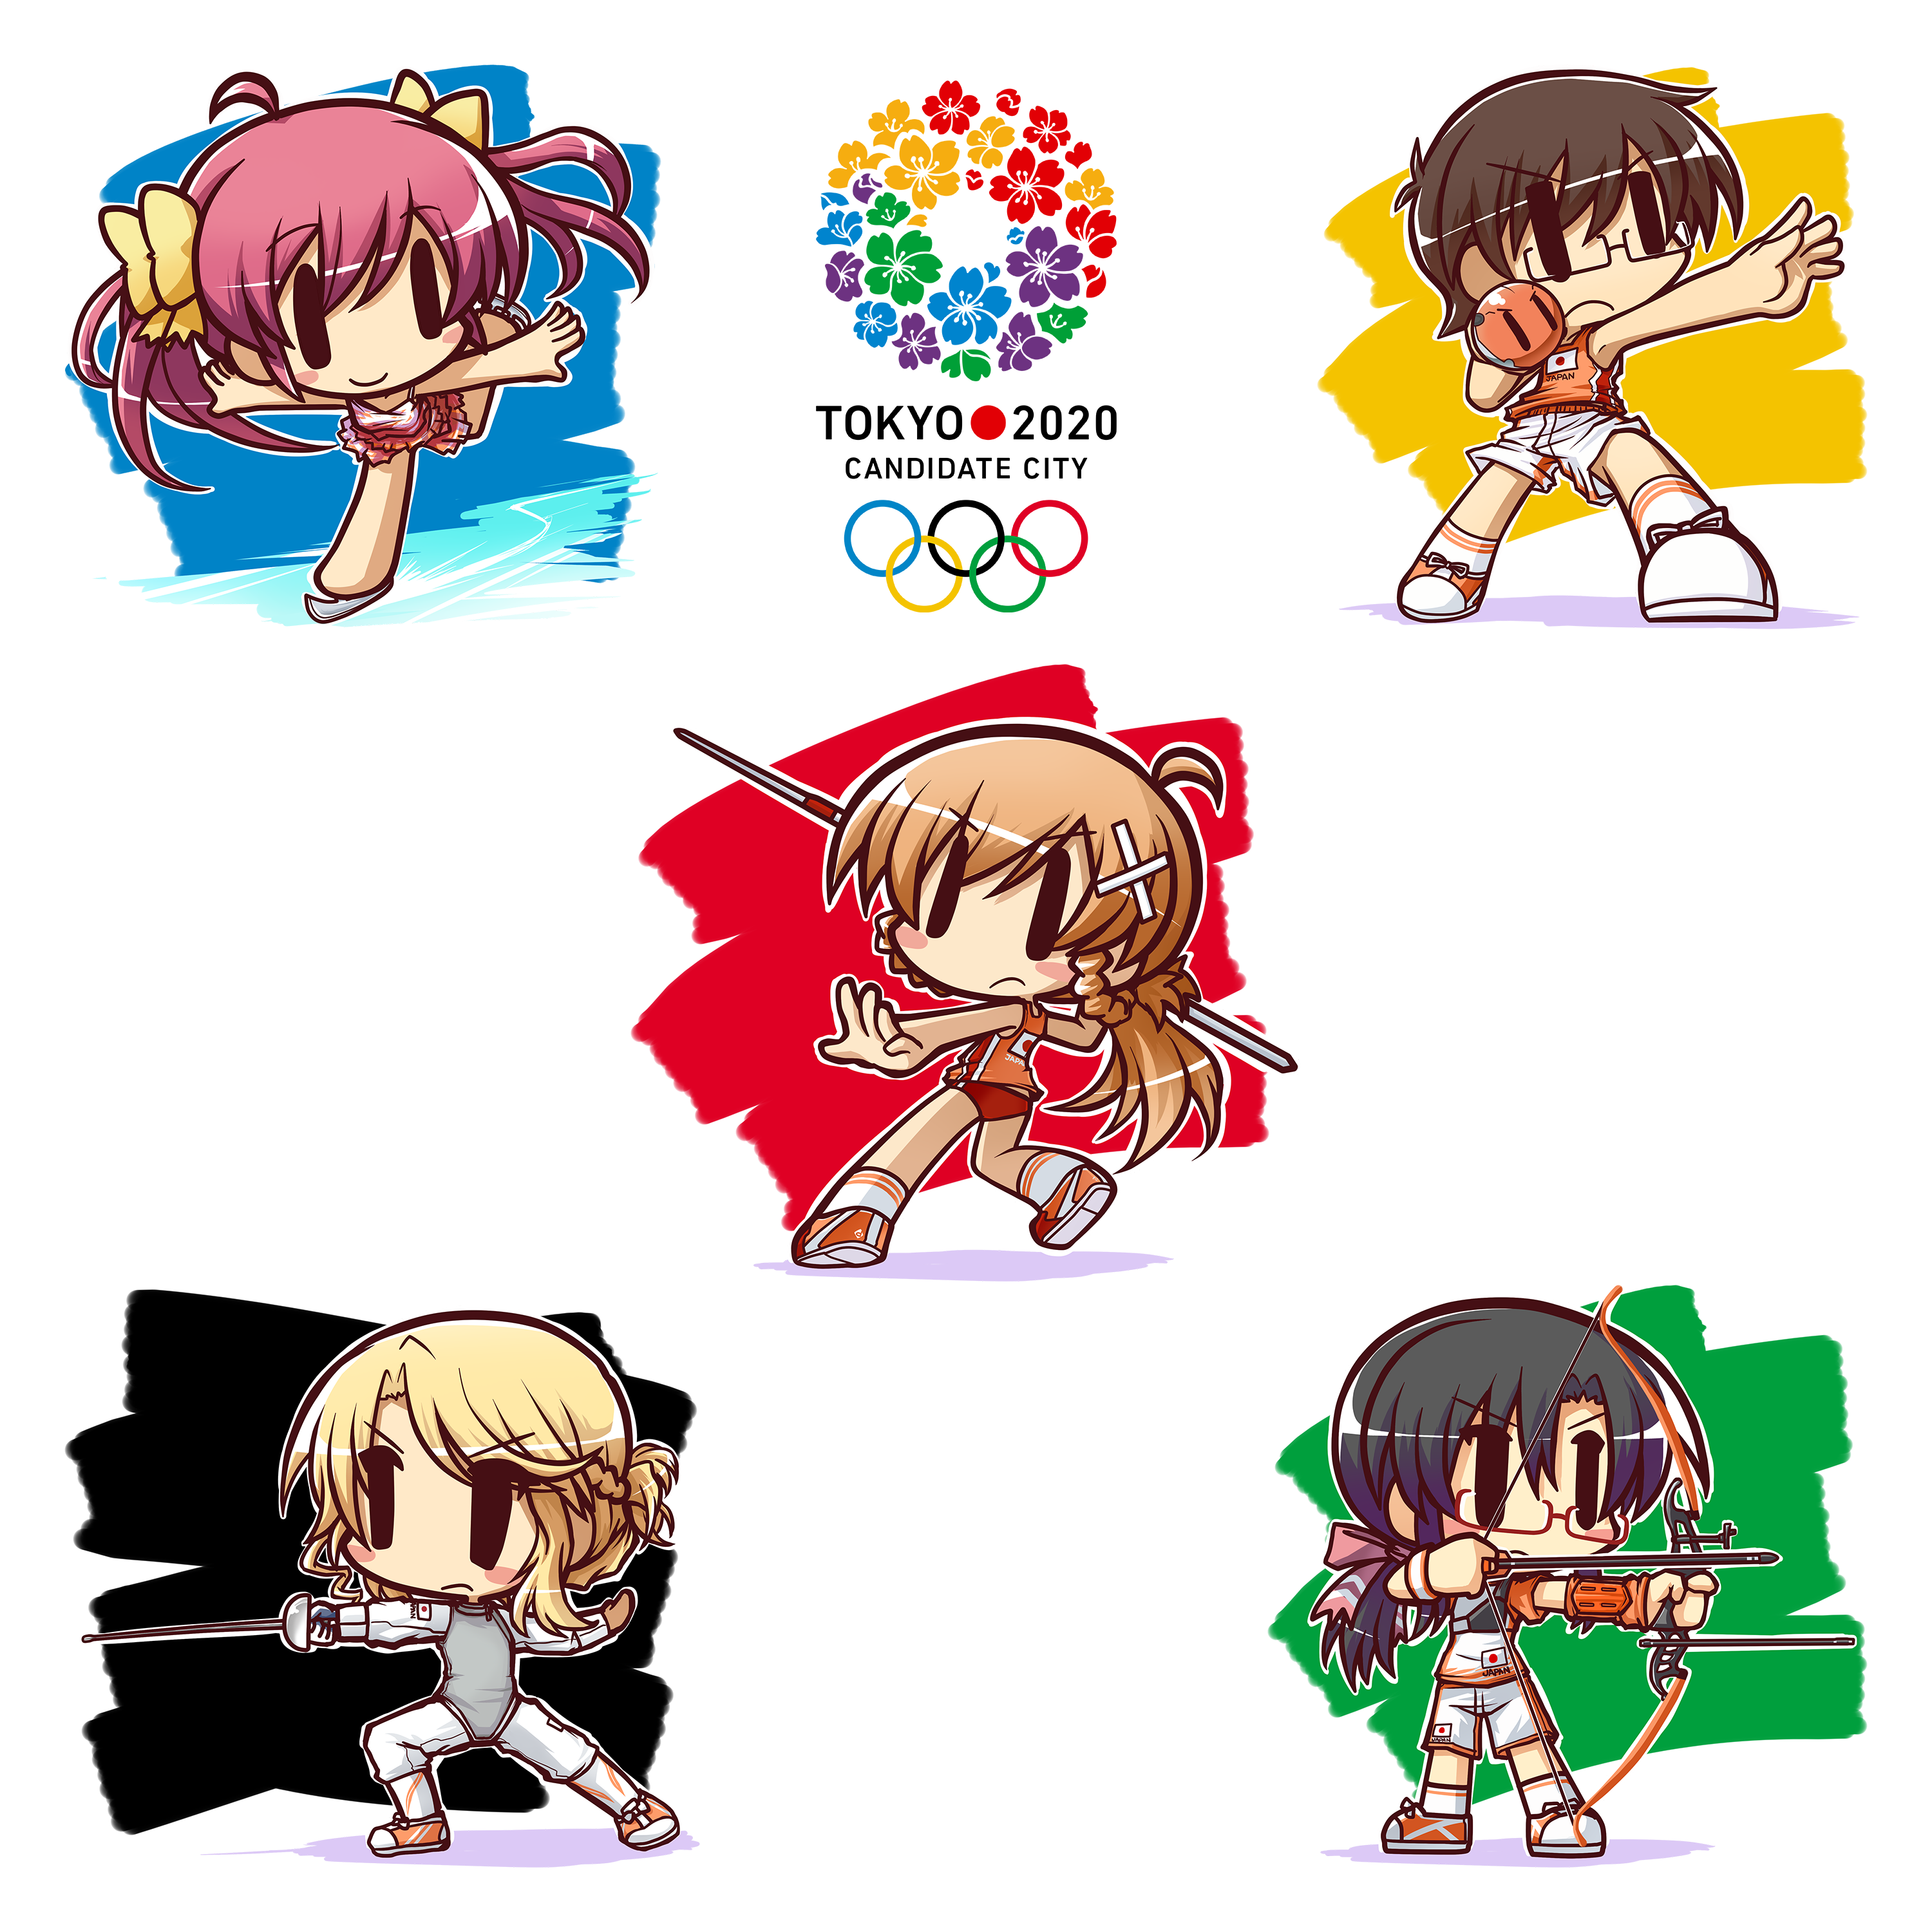 Tokyo 2020 Candidate City Petition Mascots